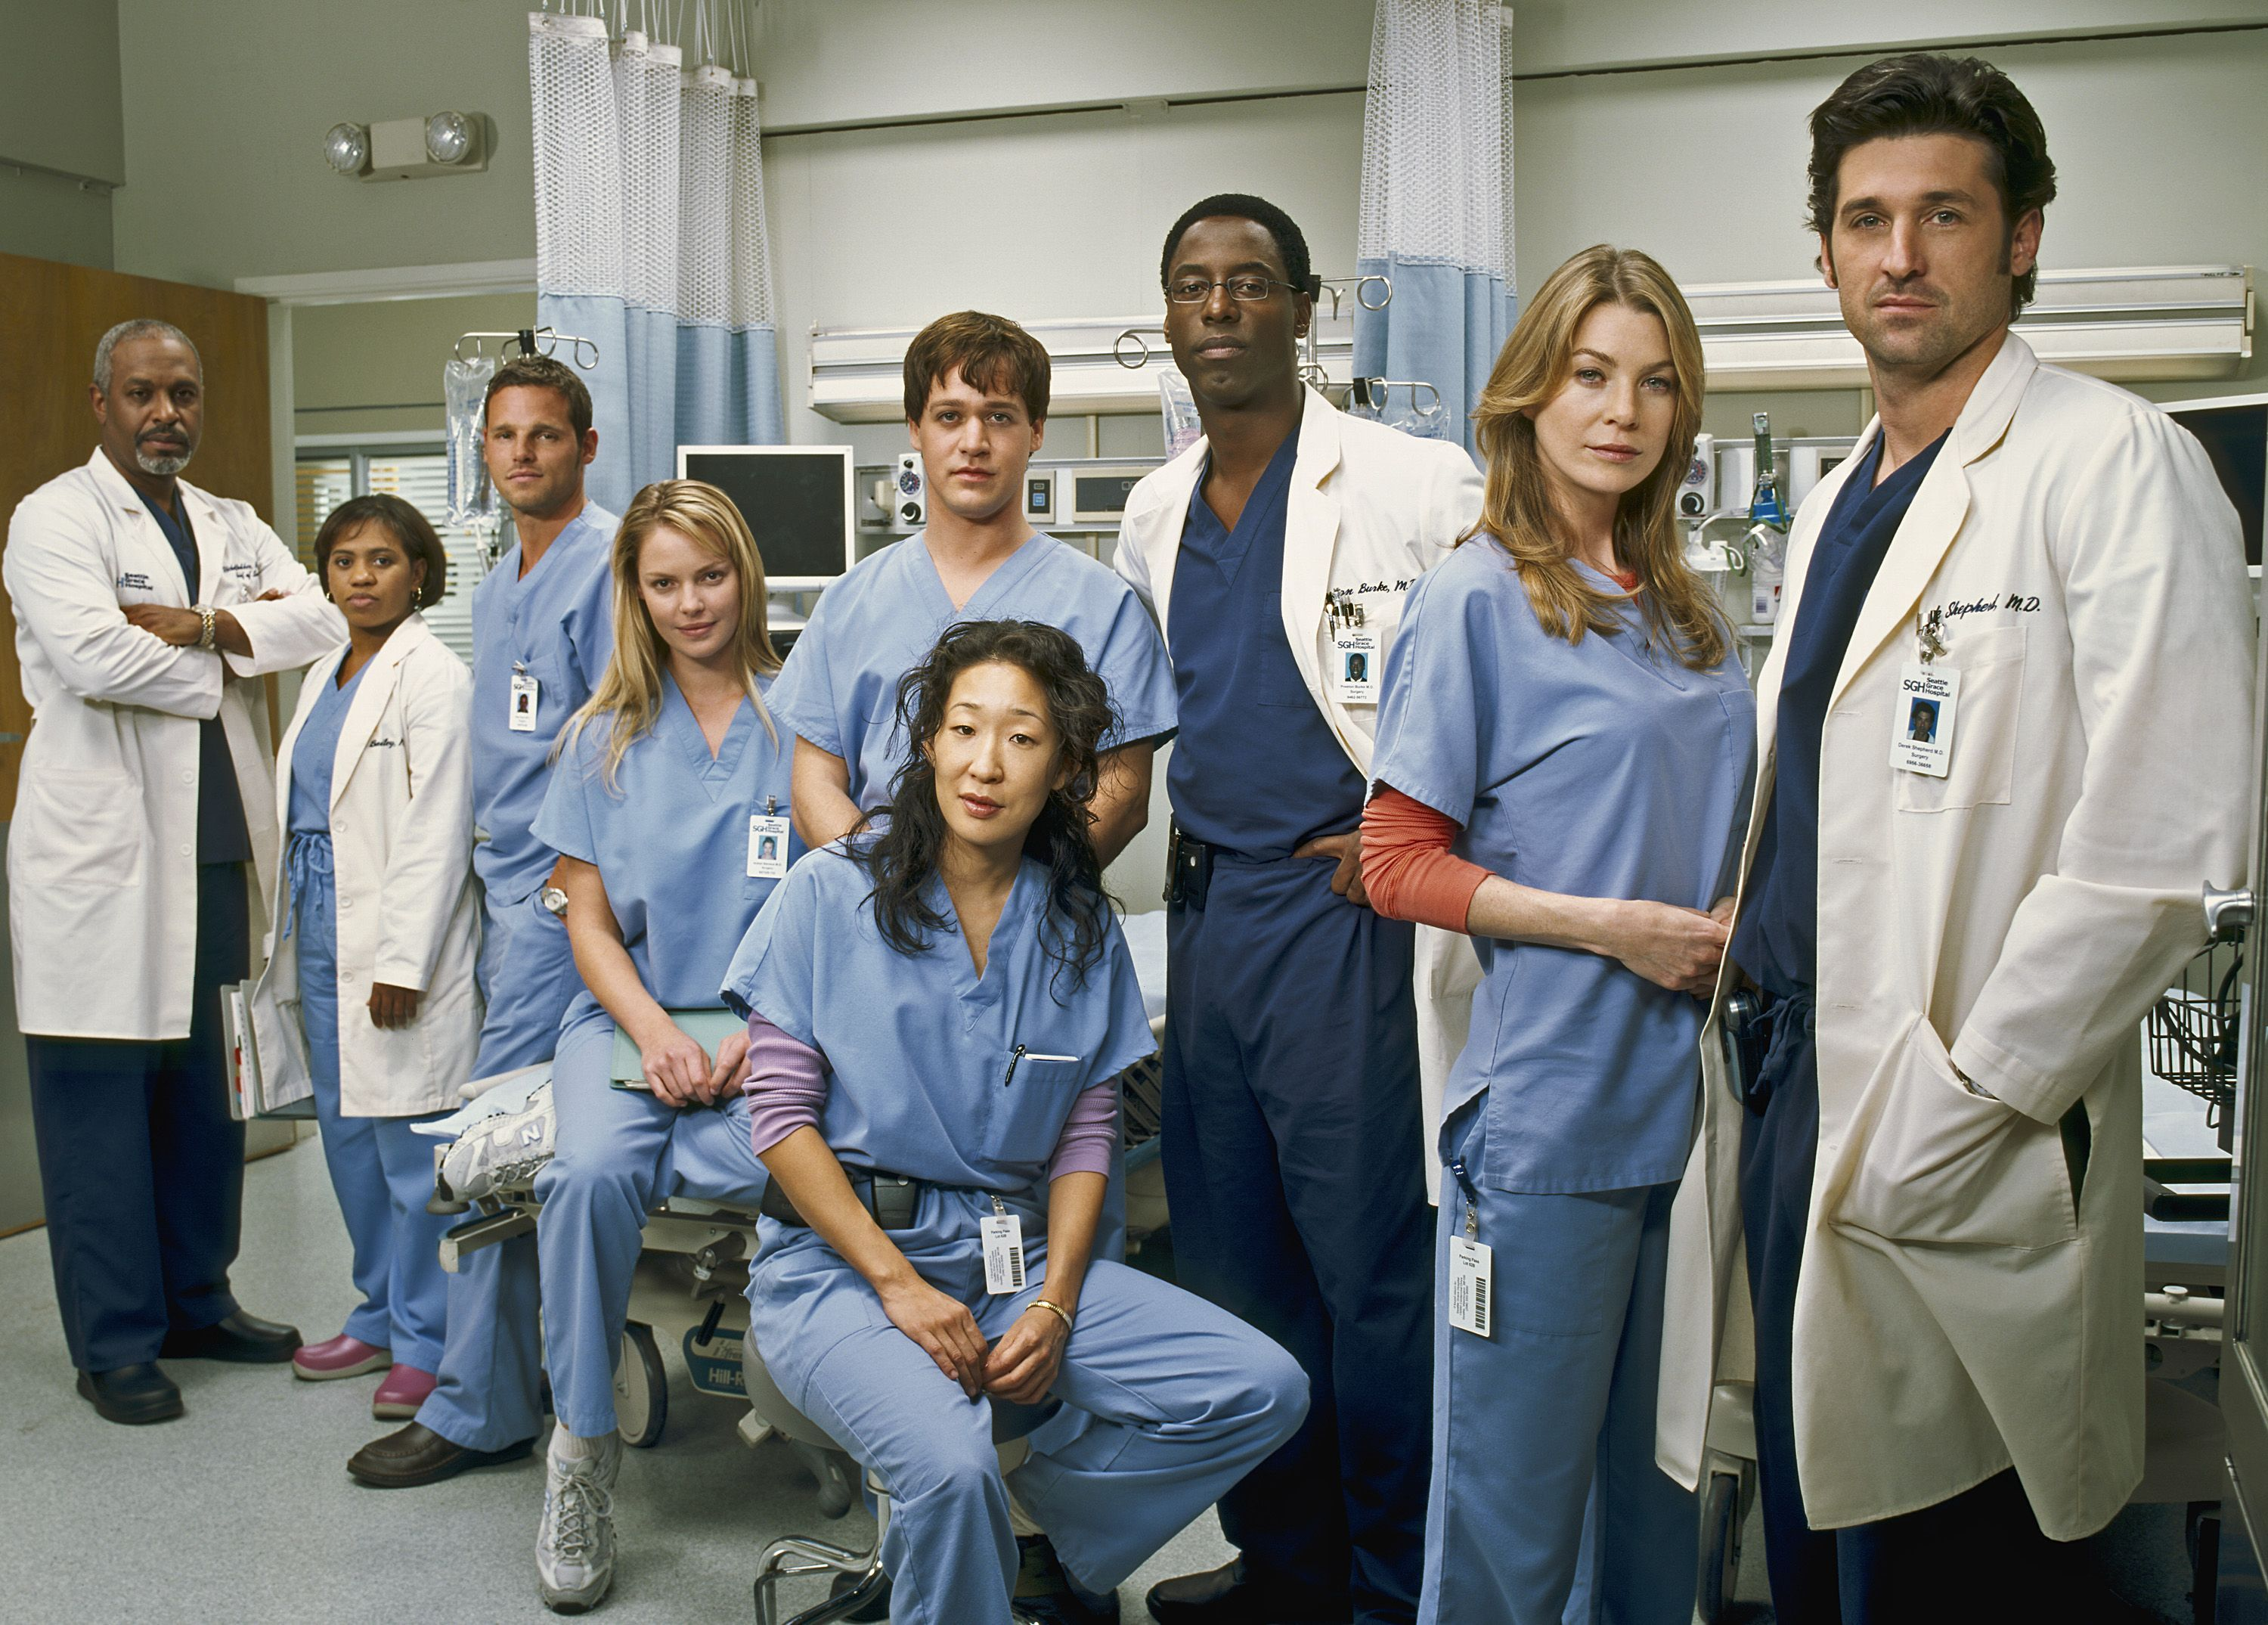 Holy McDreamy: Check Out the 'Grey's Anatomy' Cast Then & Now